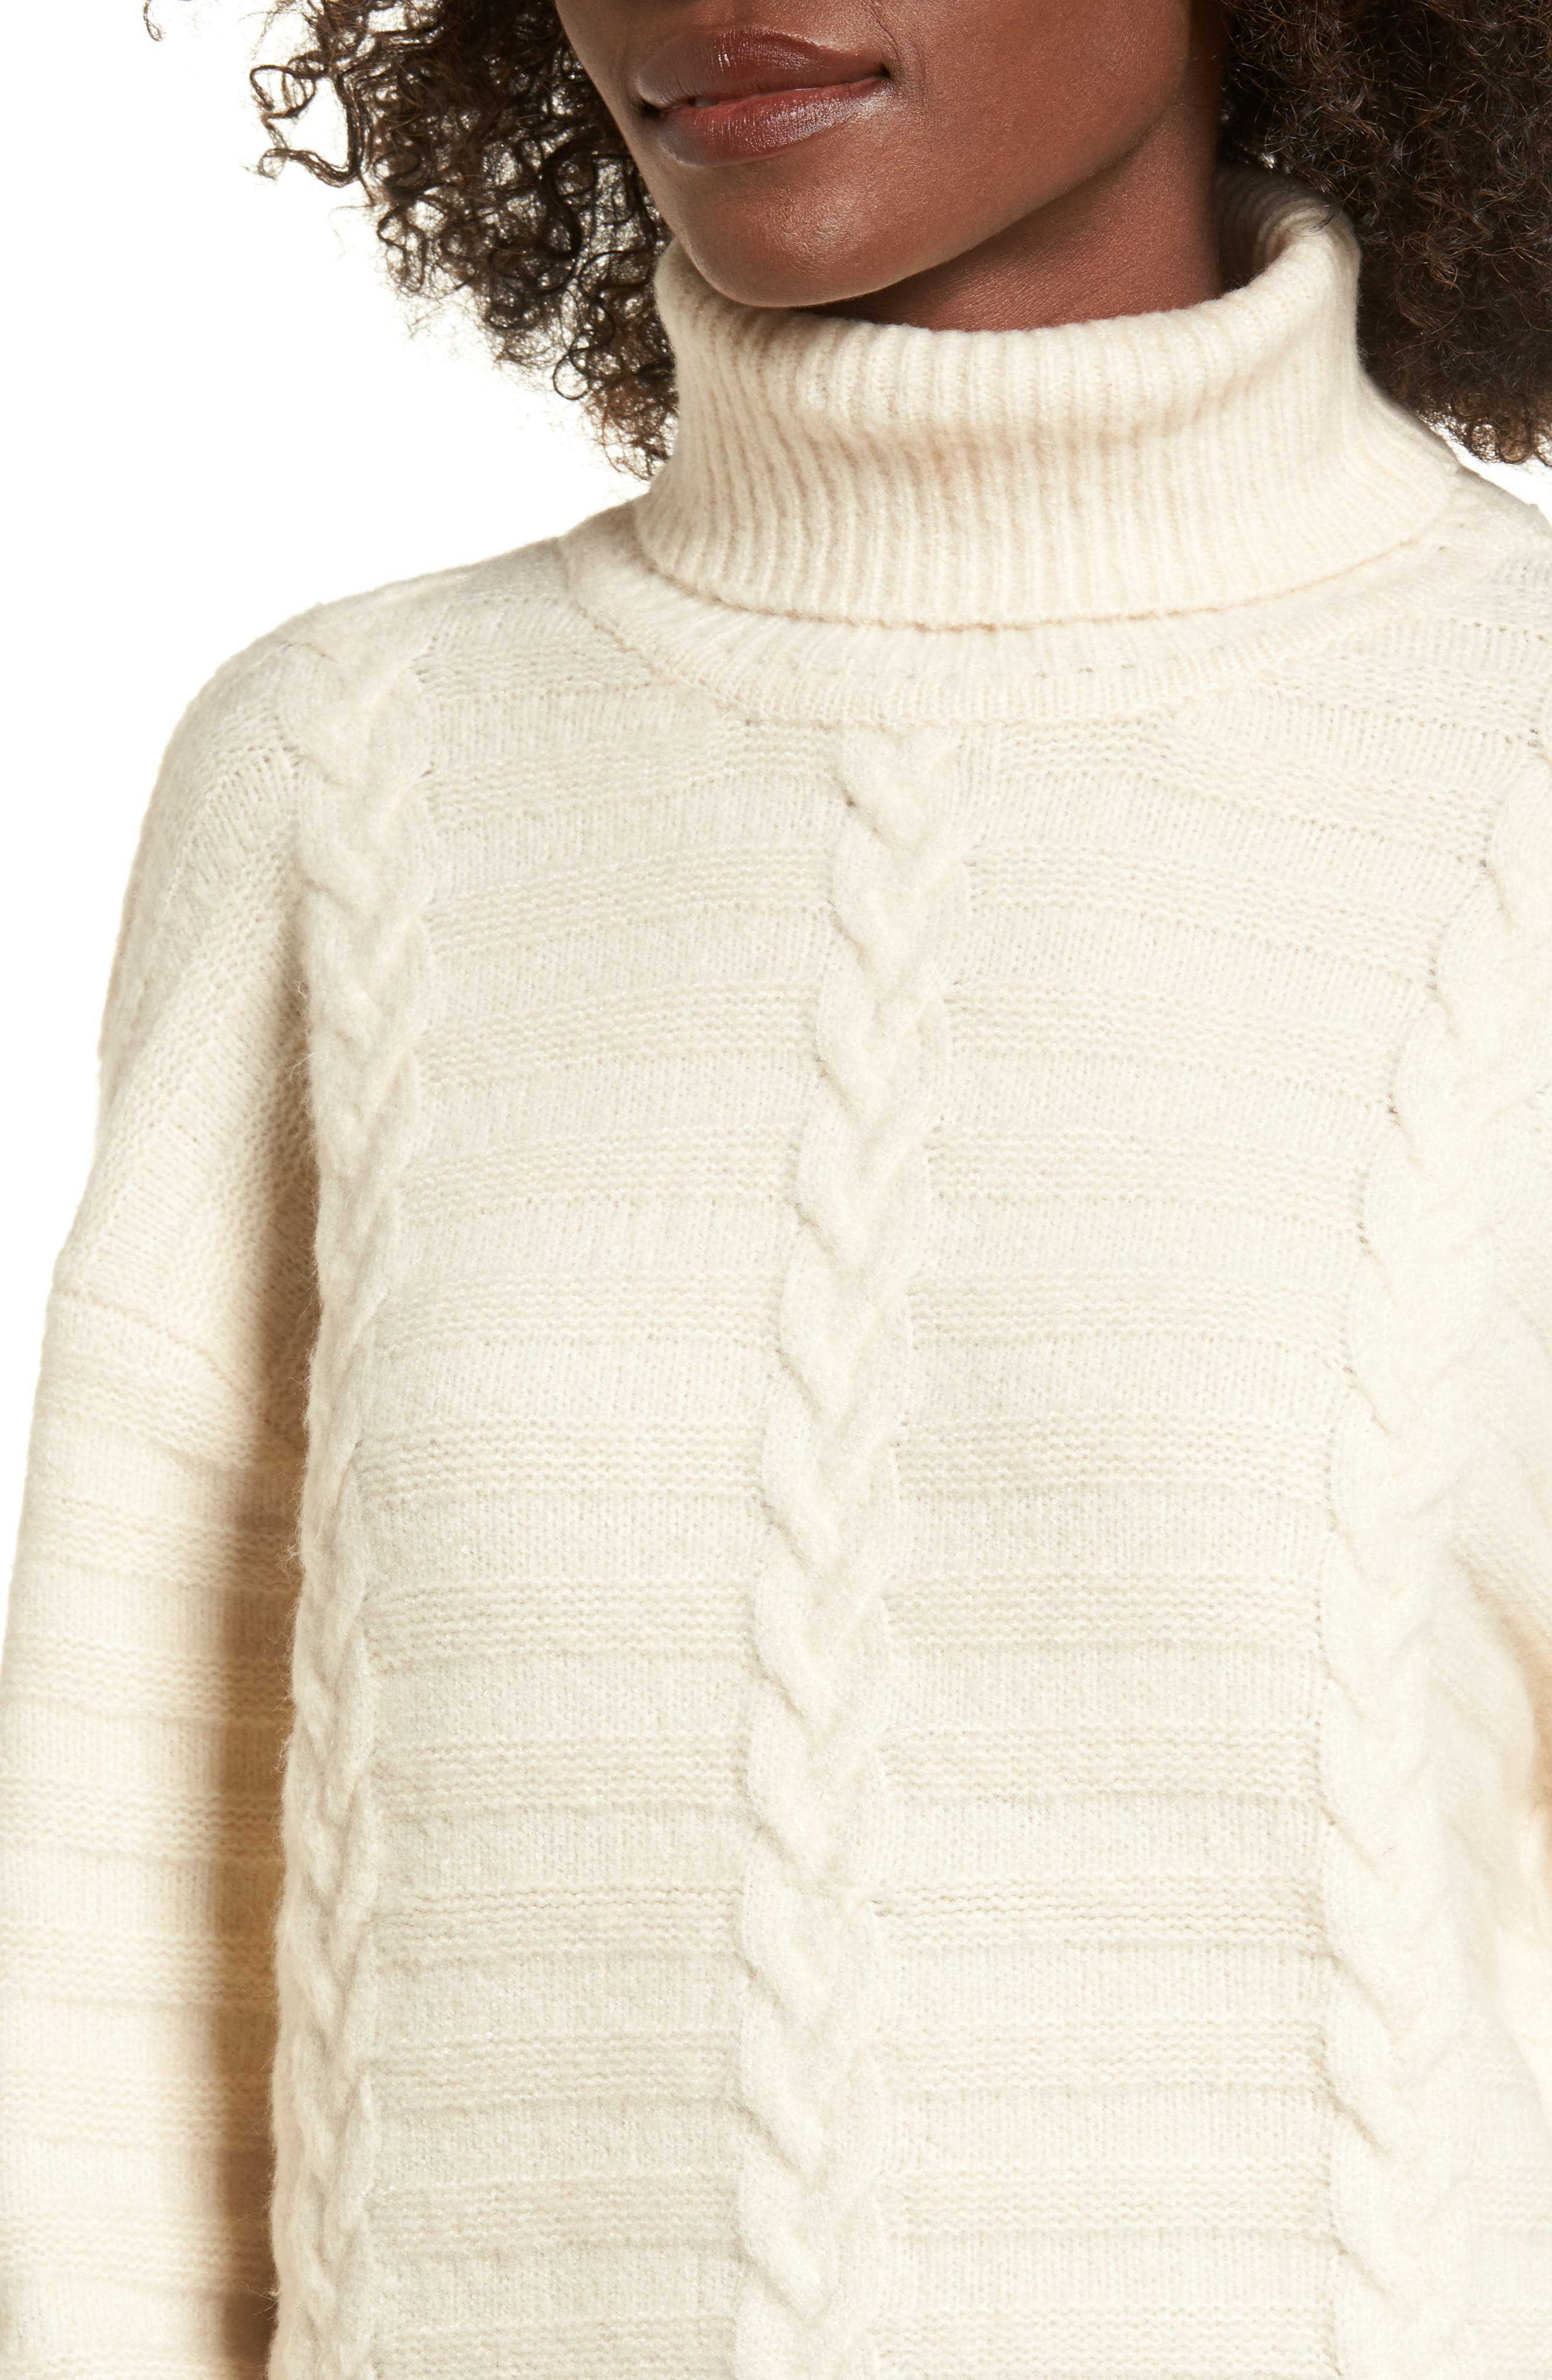 Turtleneck Sweater,                             Alternate thumbnail 4, color,                             Ivory